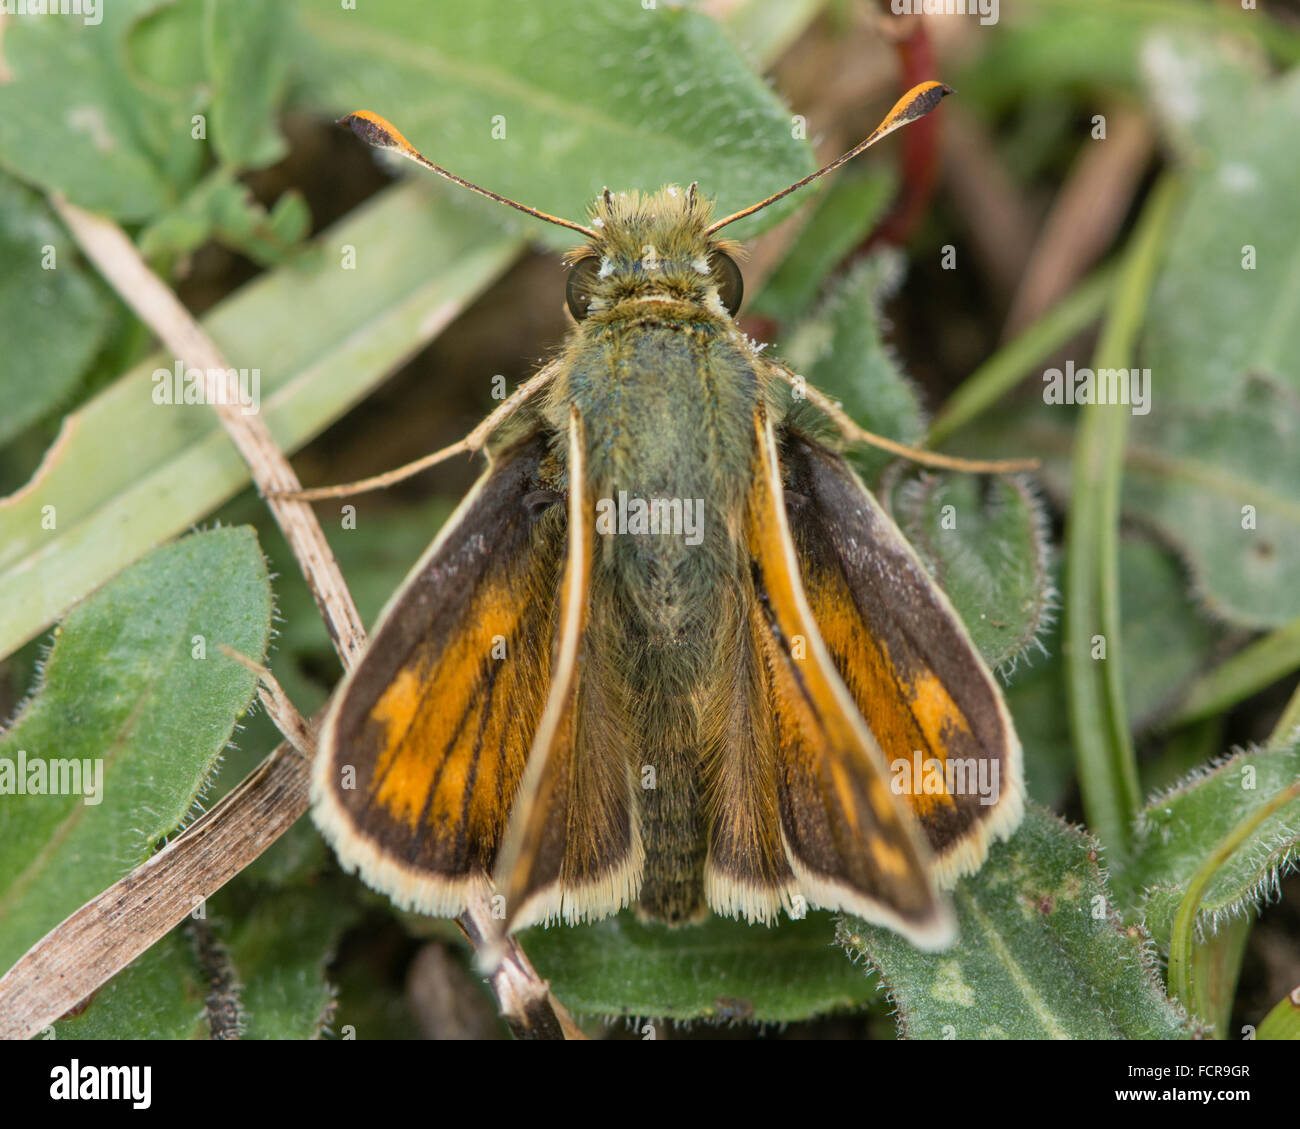 Silver-spotted skipper (Hesperia comma) from above. A well-marked skipper in the family Hesperiidae, showing positions Stock Photo